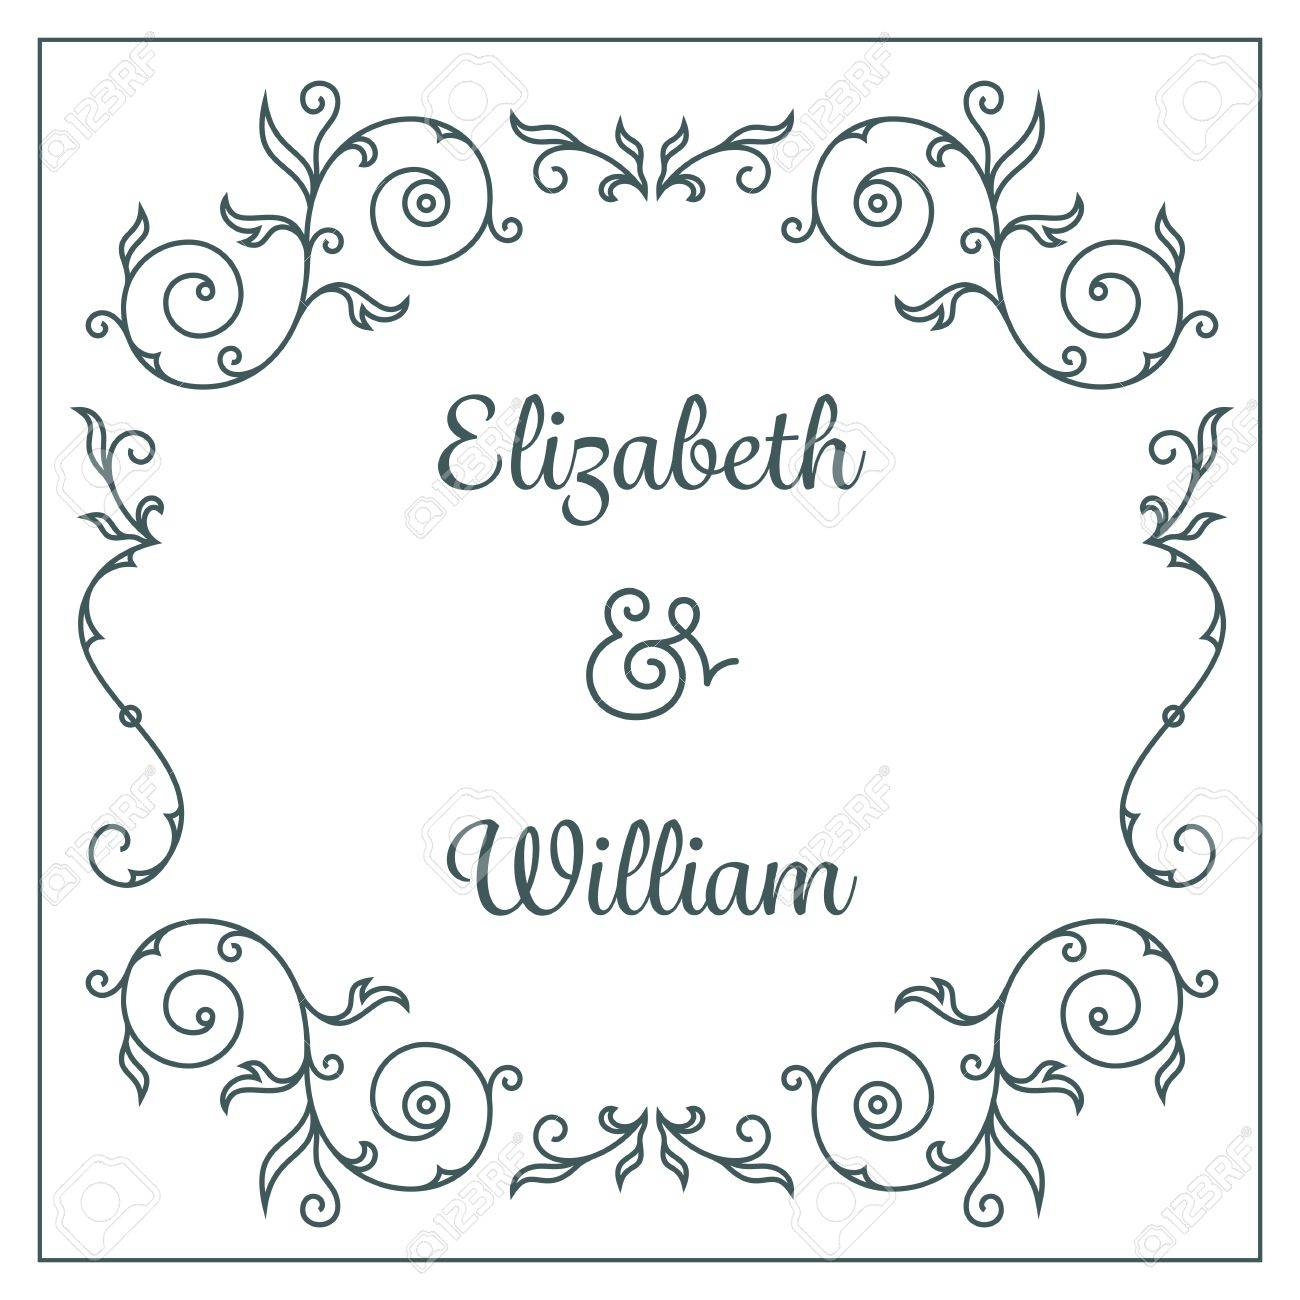 Wedding ornaments - Letterpress Wedding Invitation Card Template With Floral Ornaments And Custom Ampersand Stock Vector 30879162